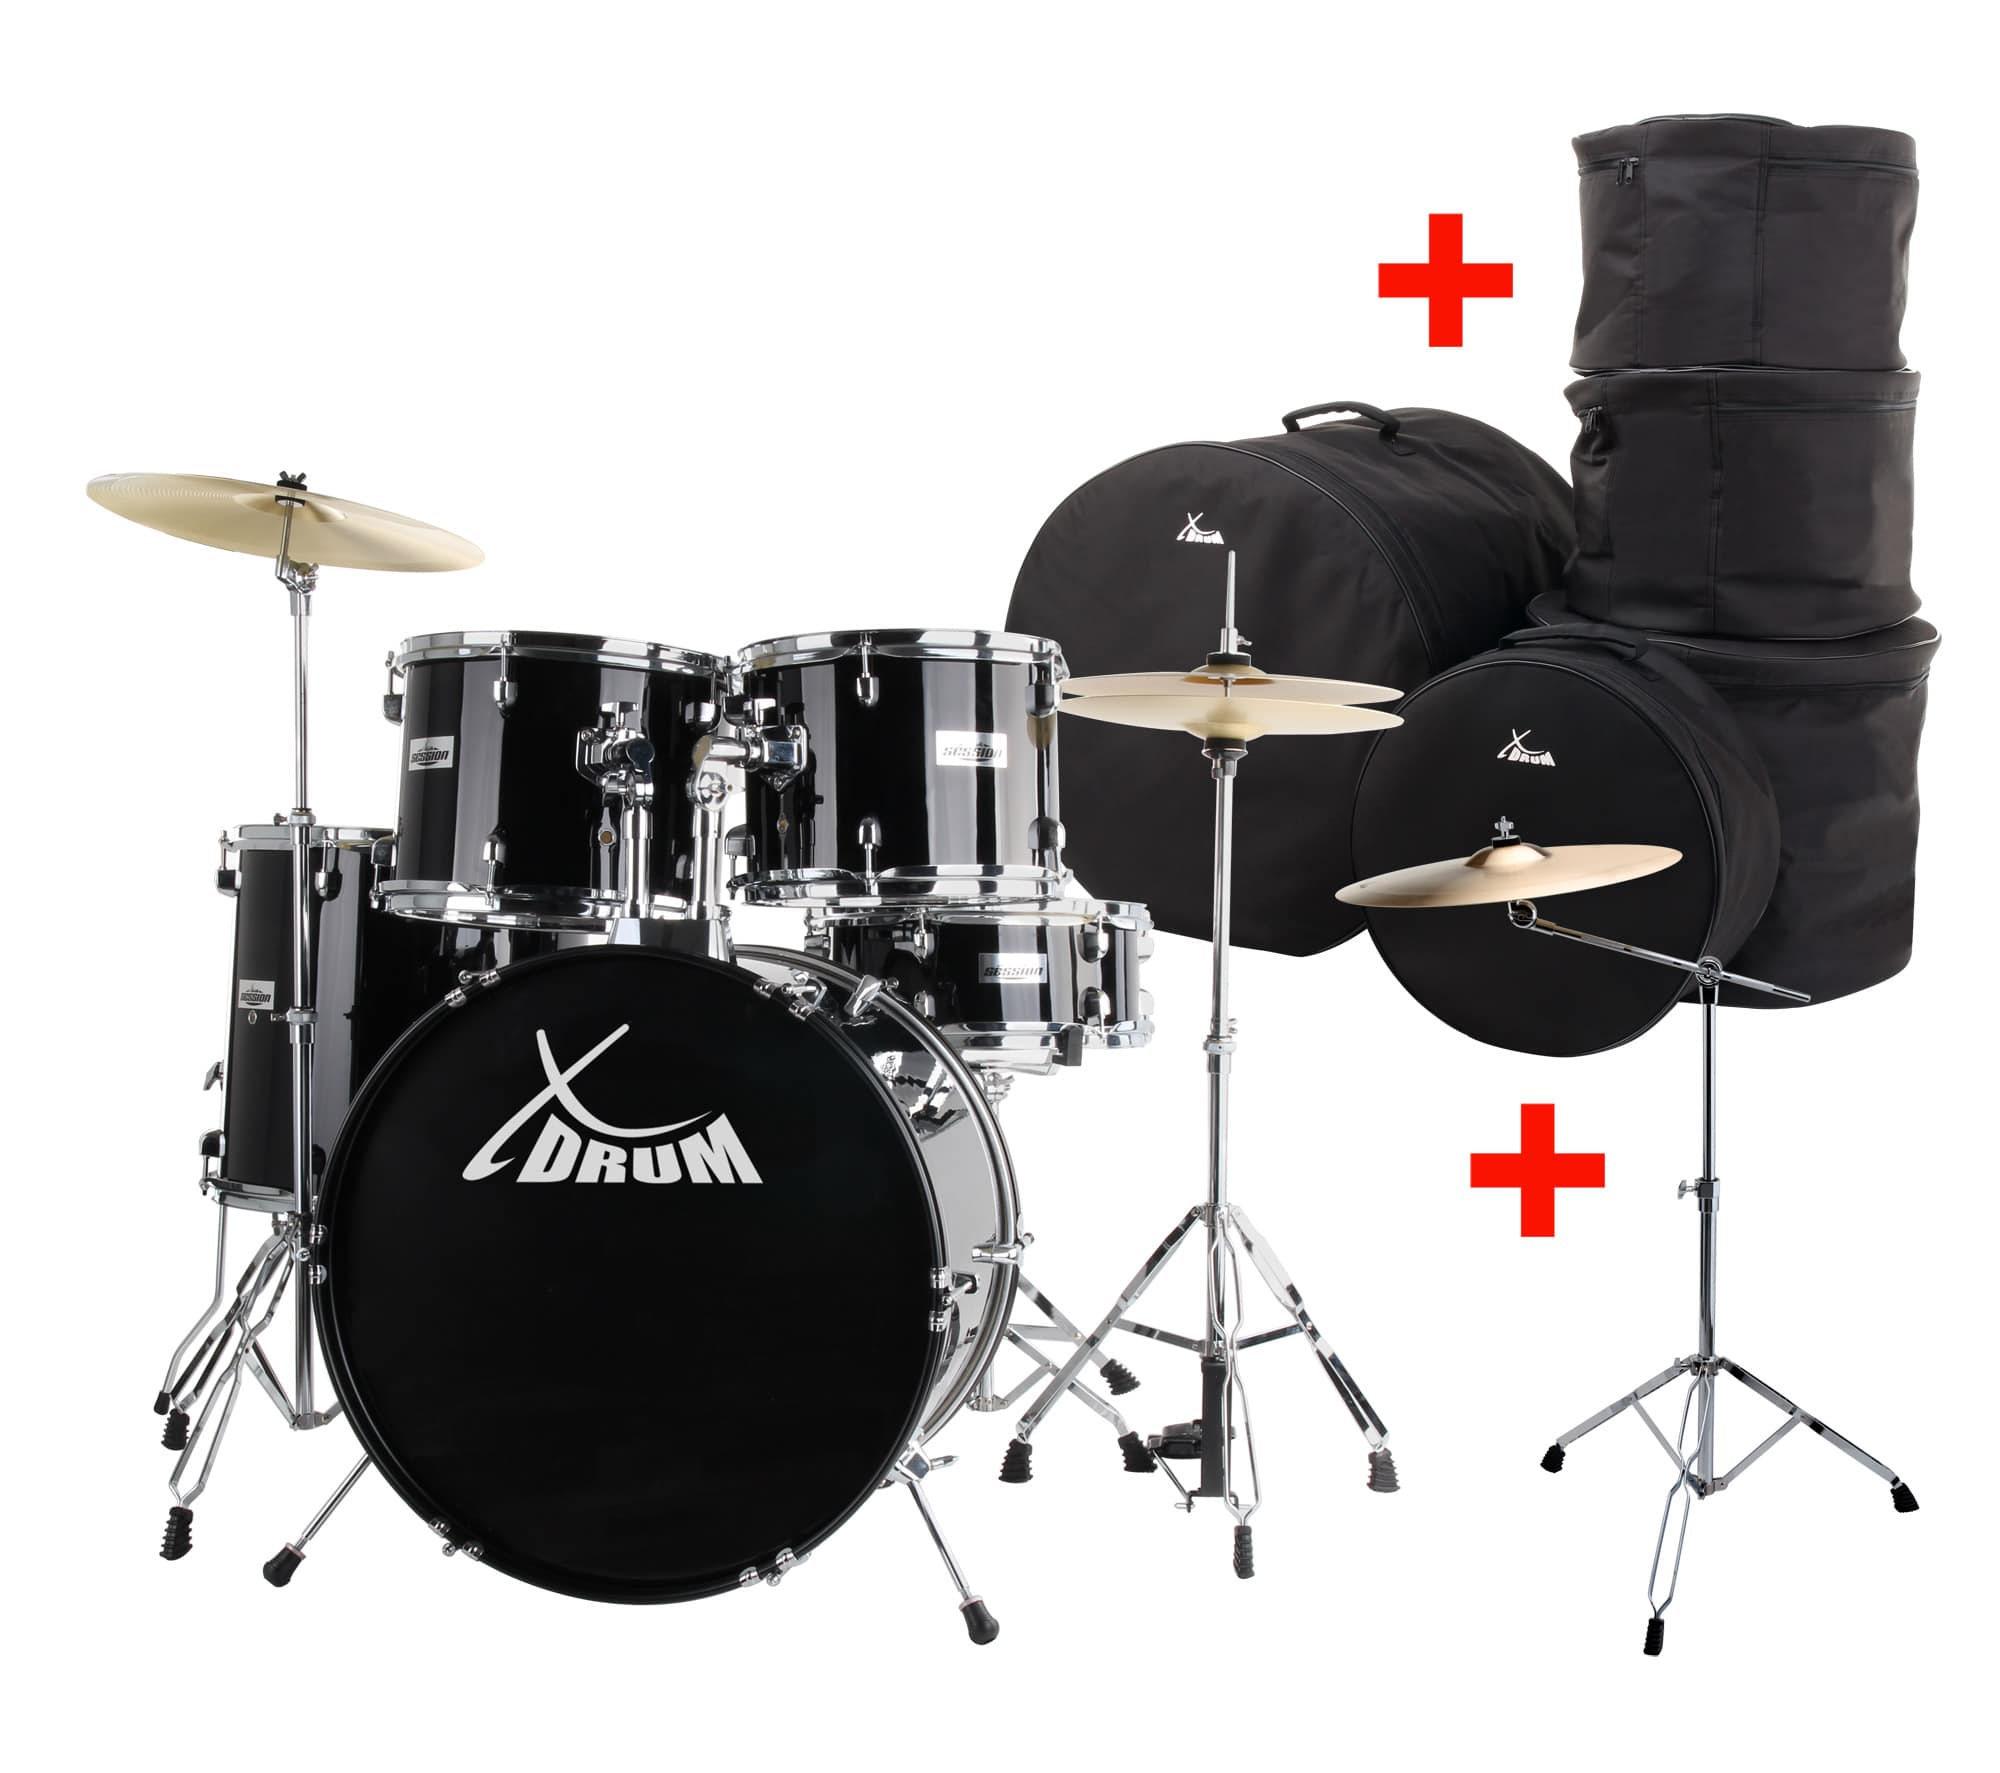 Xdrum Semi 22 Quot Standard Drumset Midnight Black Set Incl